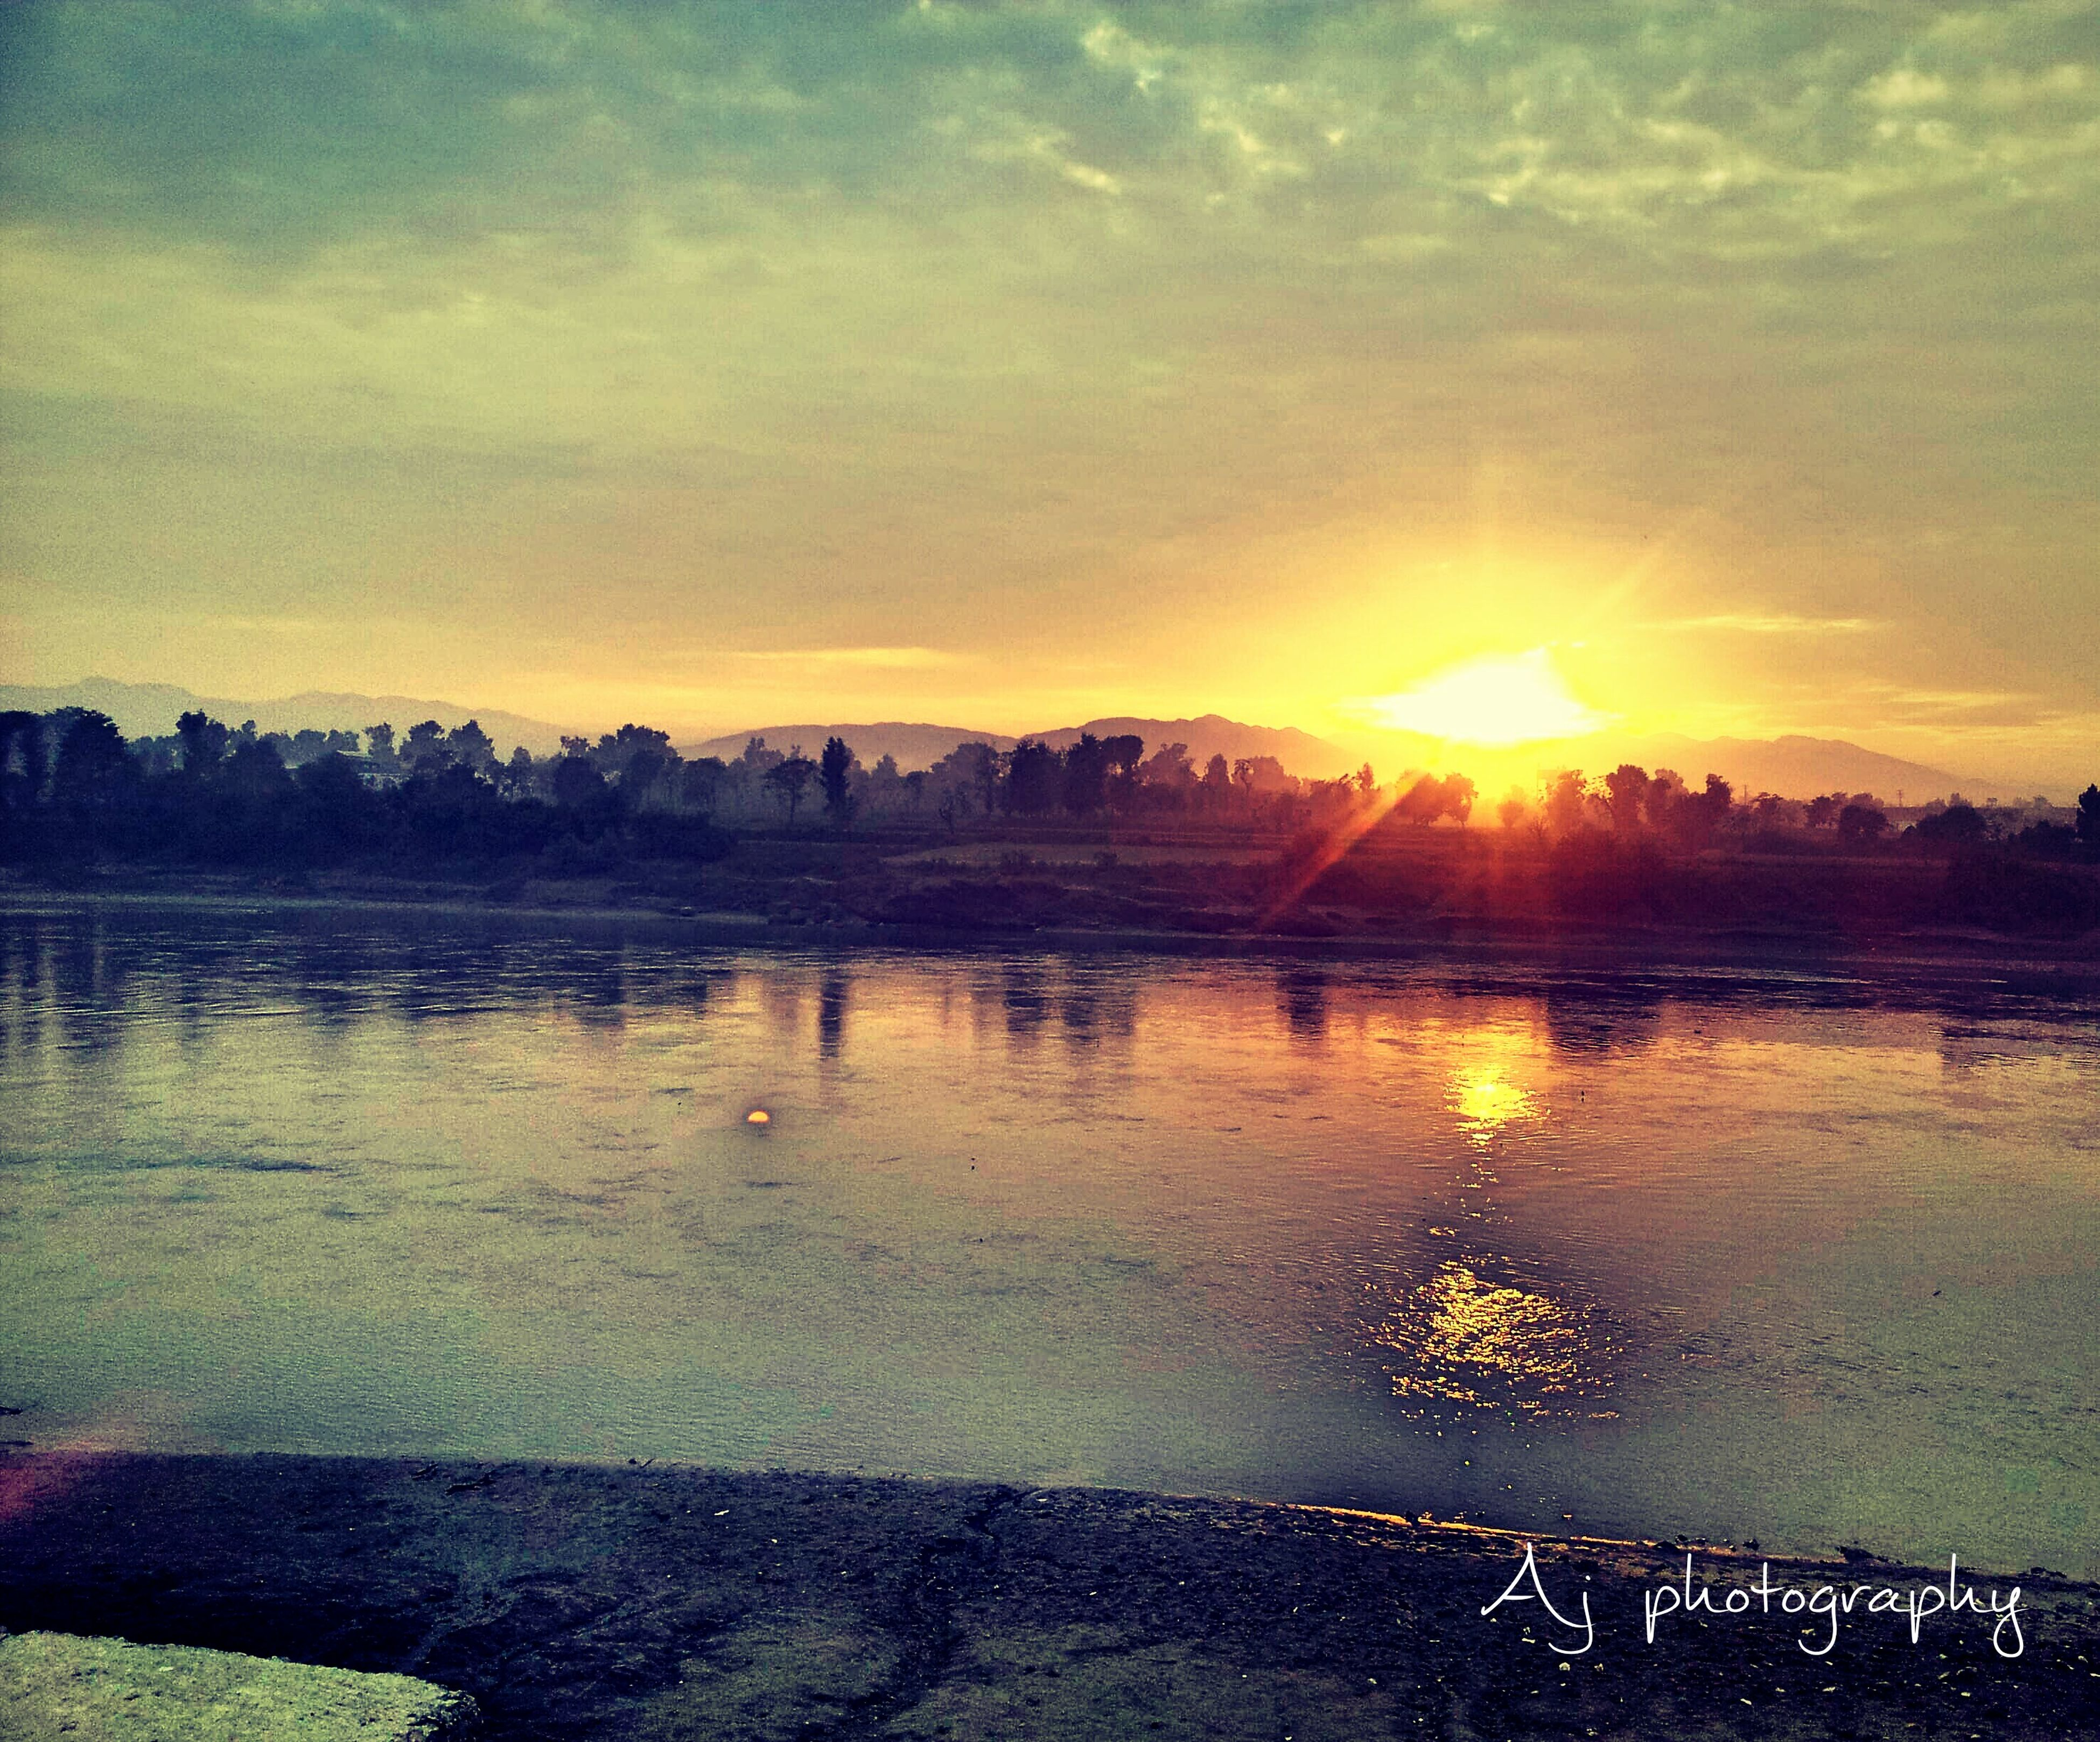 sunset, water, reflection, sun, sky, lake, scenics, beauty in nature, tranquil scene, orange color, cloud - sky, tranquility, nature, sunlight, idyllic, river, sunbeam, outdoors, waterfront, cloud